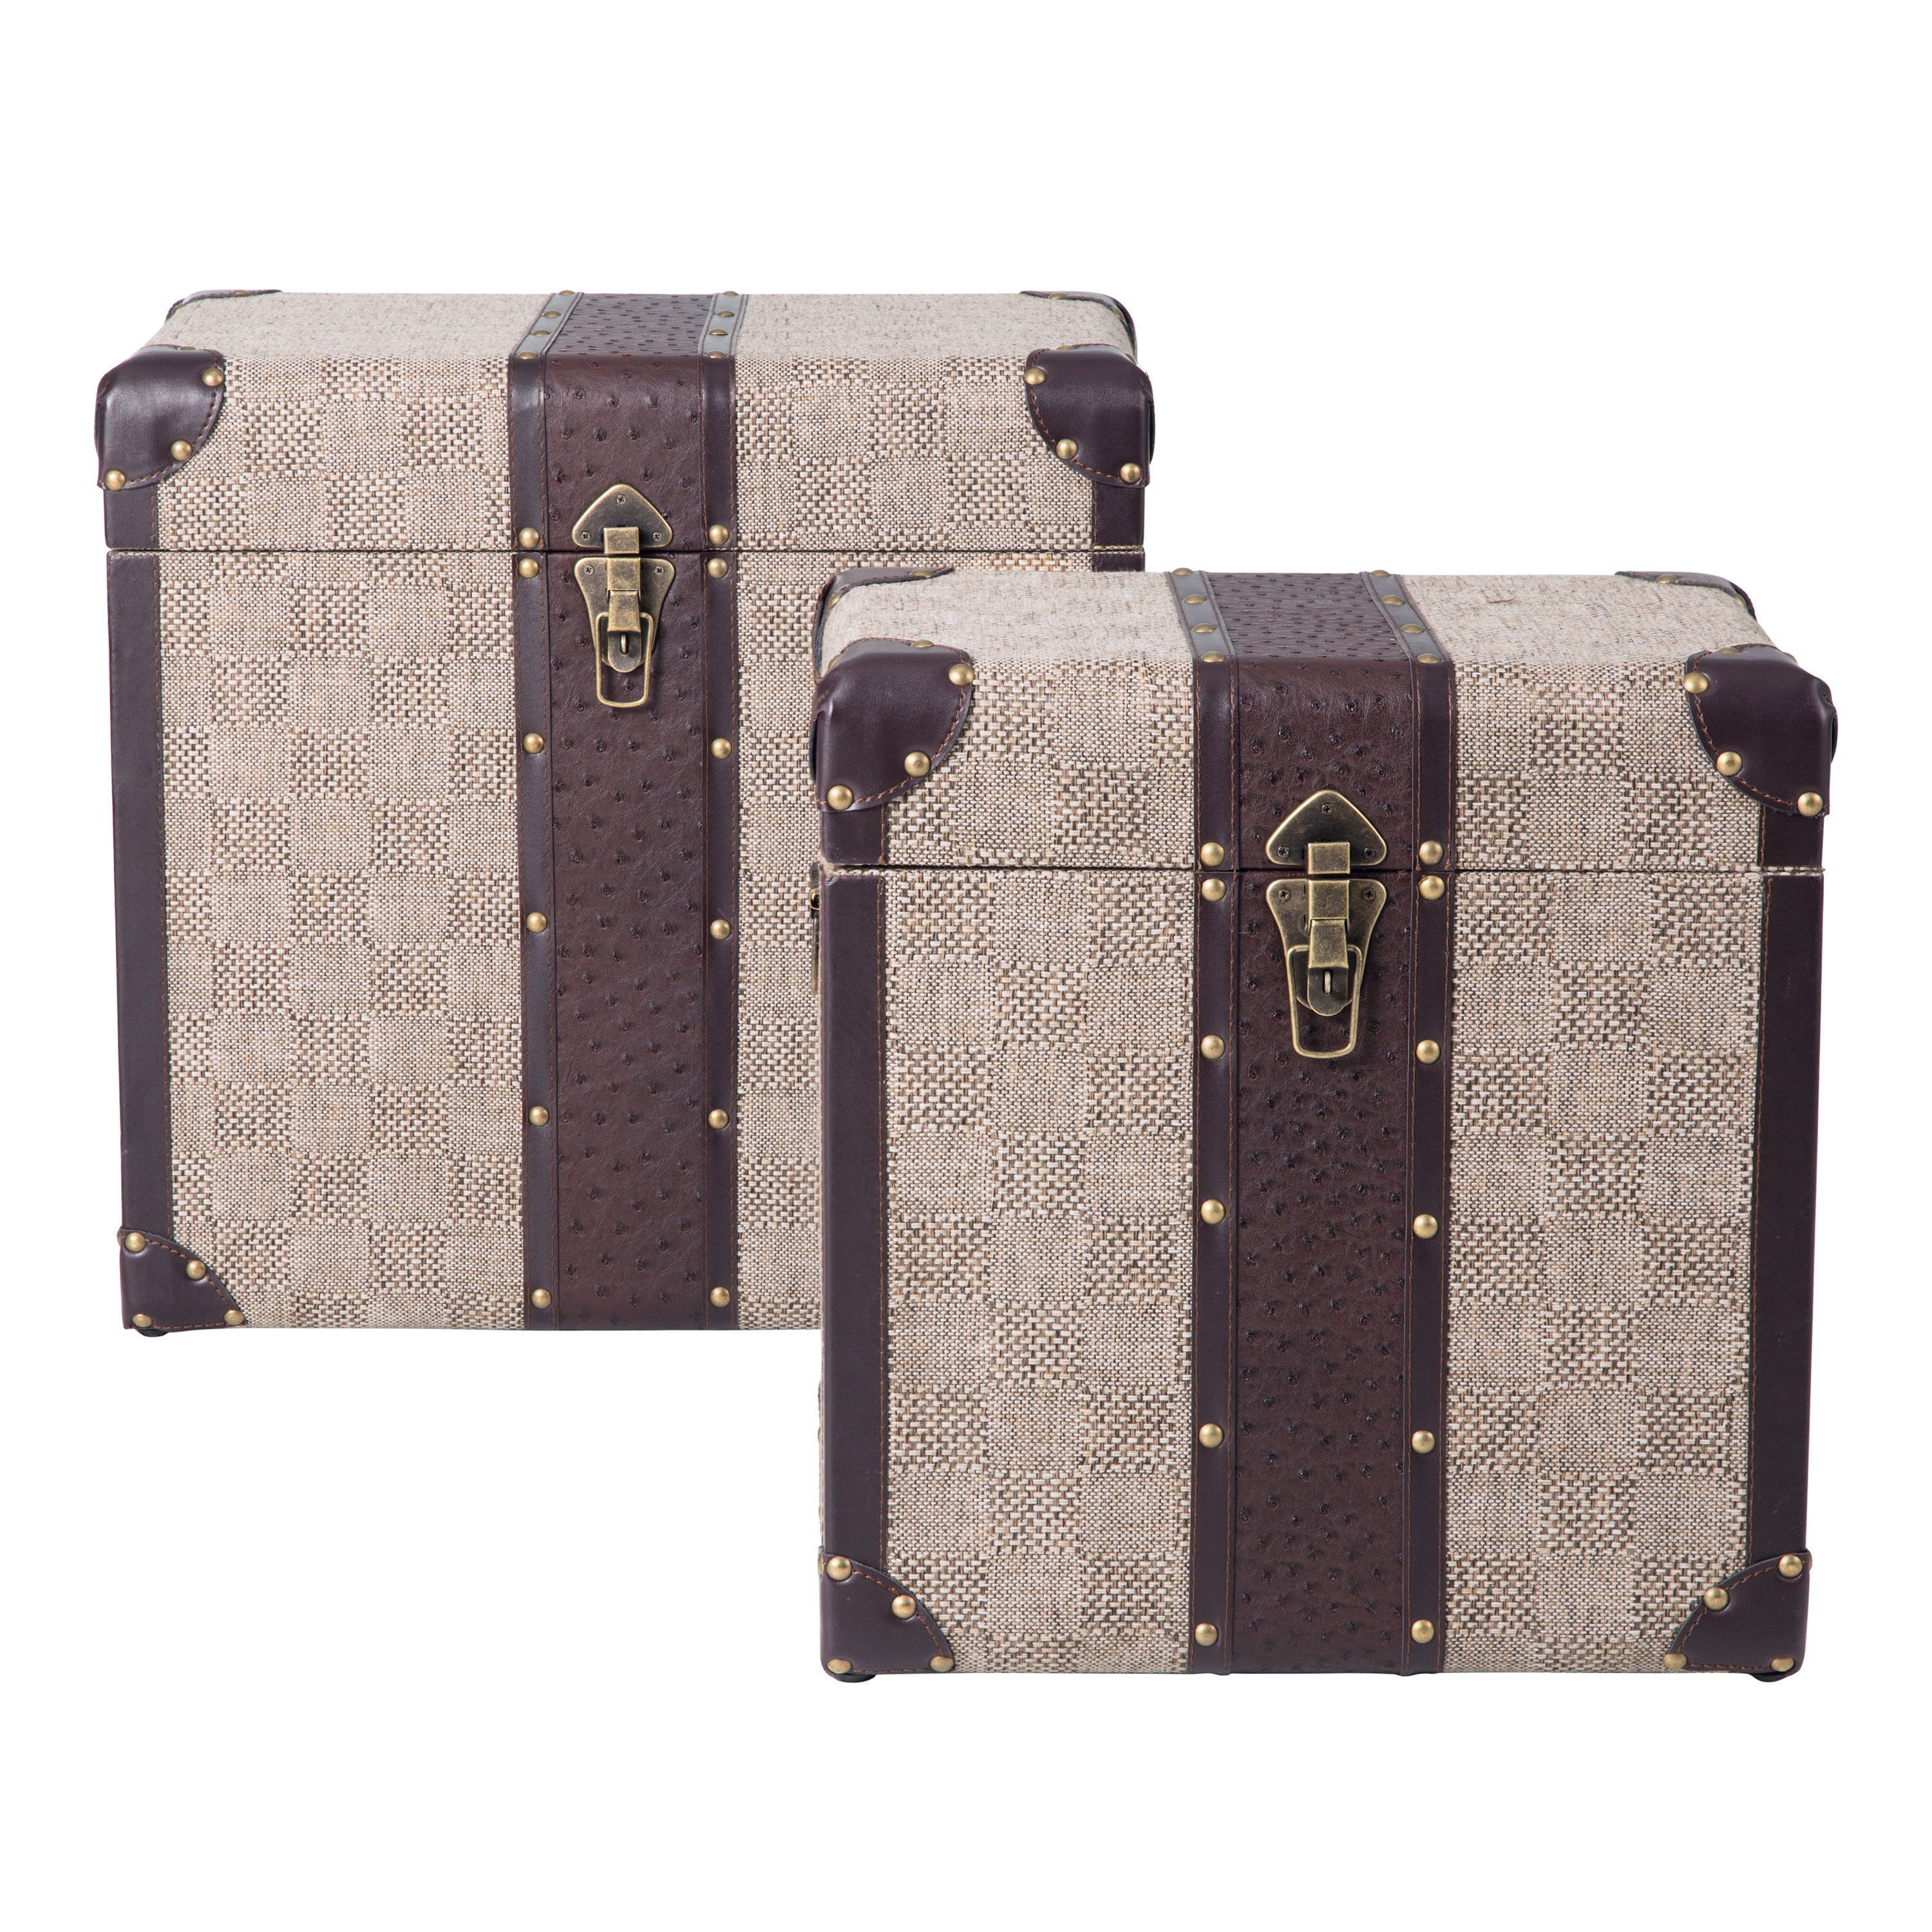 Our pair of Beacon trunks makes a handsome storage solution. Inspired by vintage steamer trunk design, the Beacon trunks are upholstered in tonal check printed on natural canvas and trimmed in faux ostrich leather.